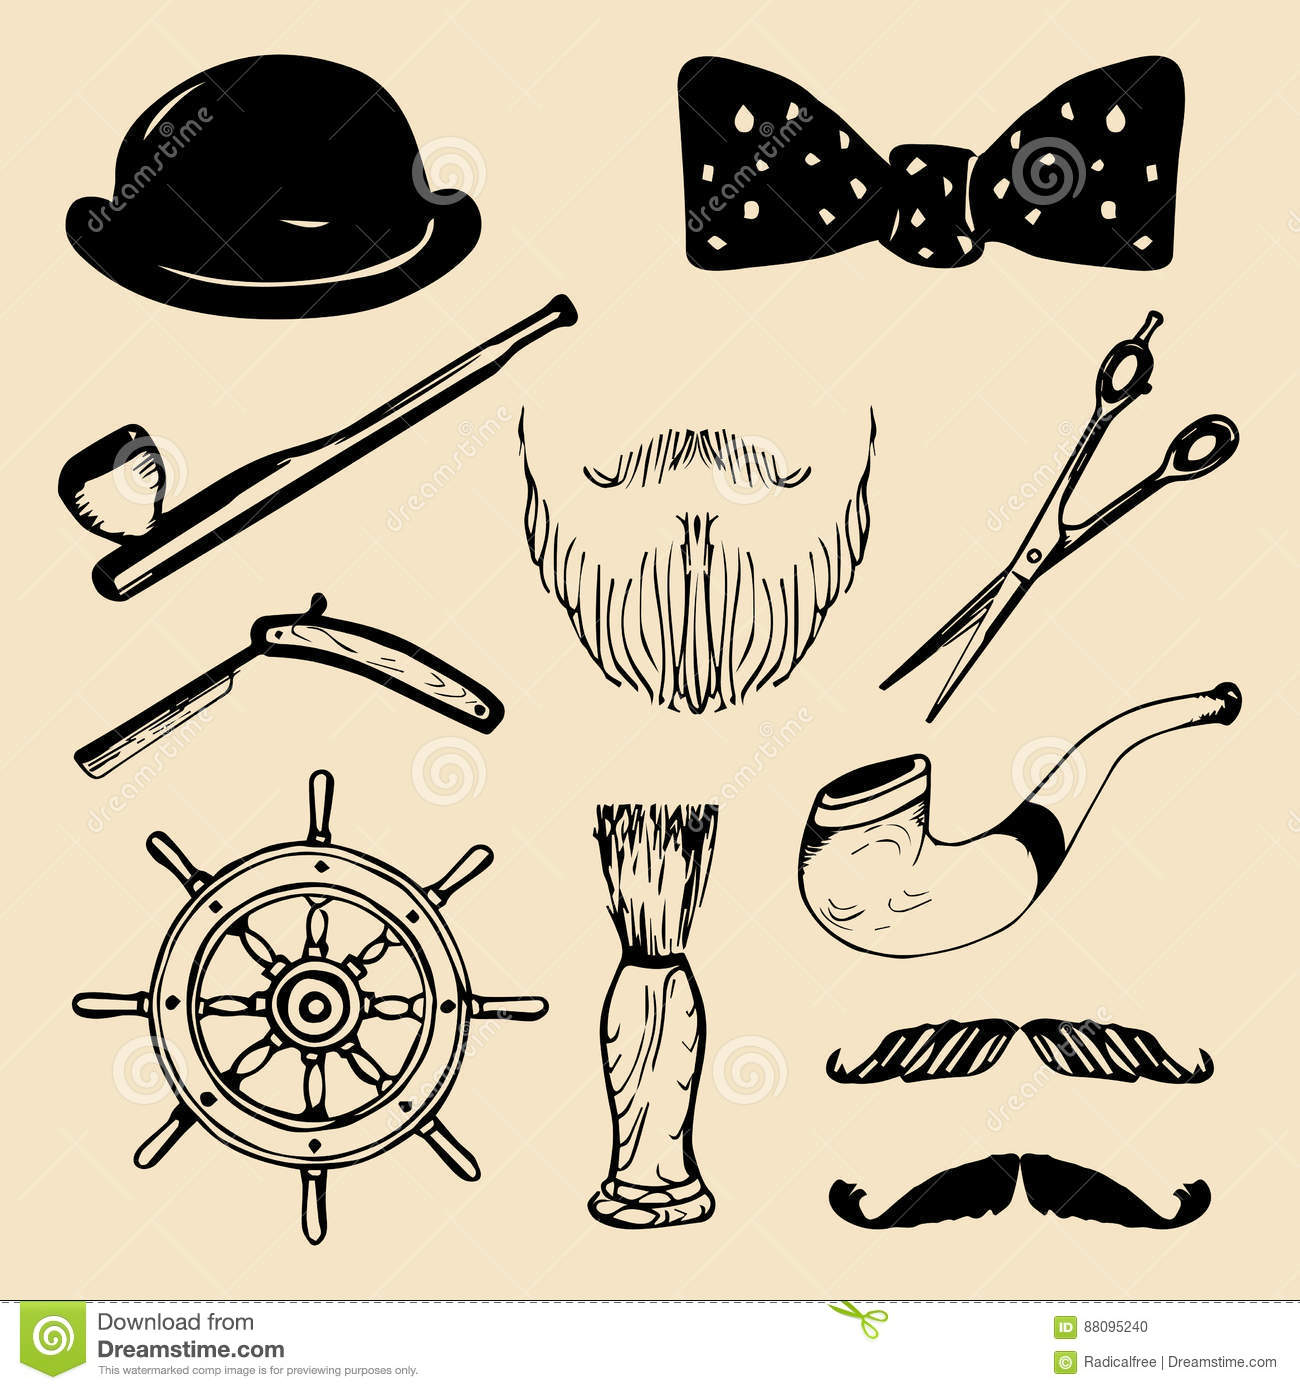 495a55b2 Vector set of hand sketched hipster vintage elements. Retro collection of  barber shop equipments, pipe, wheel, hat etc.